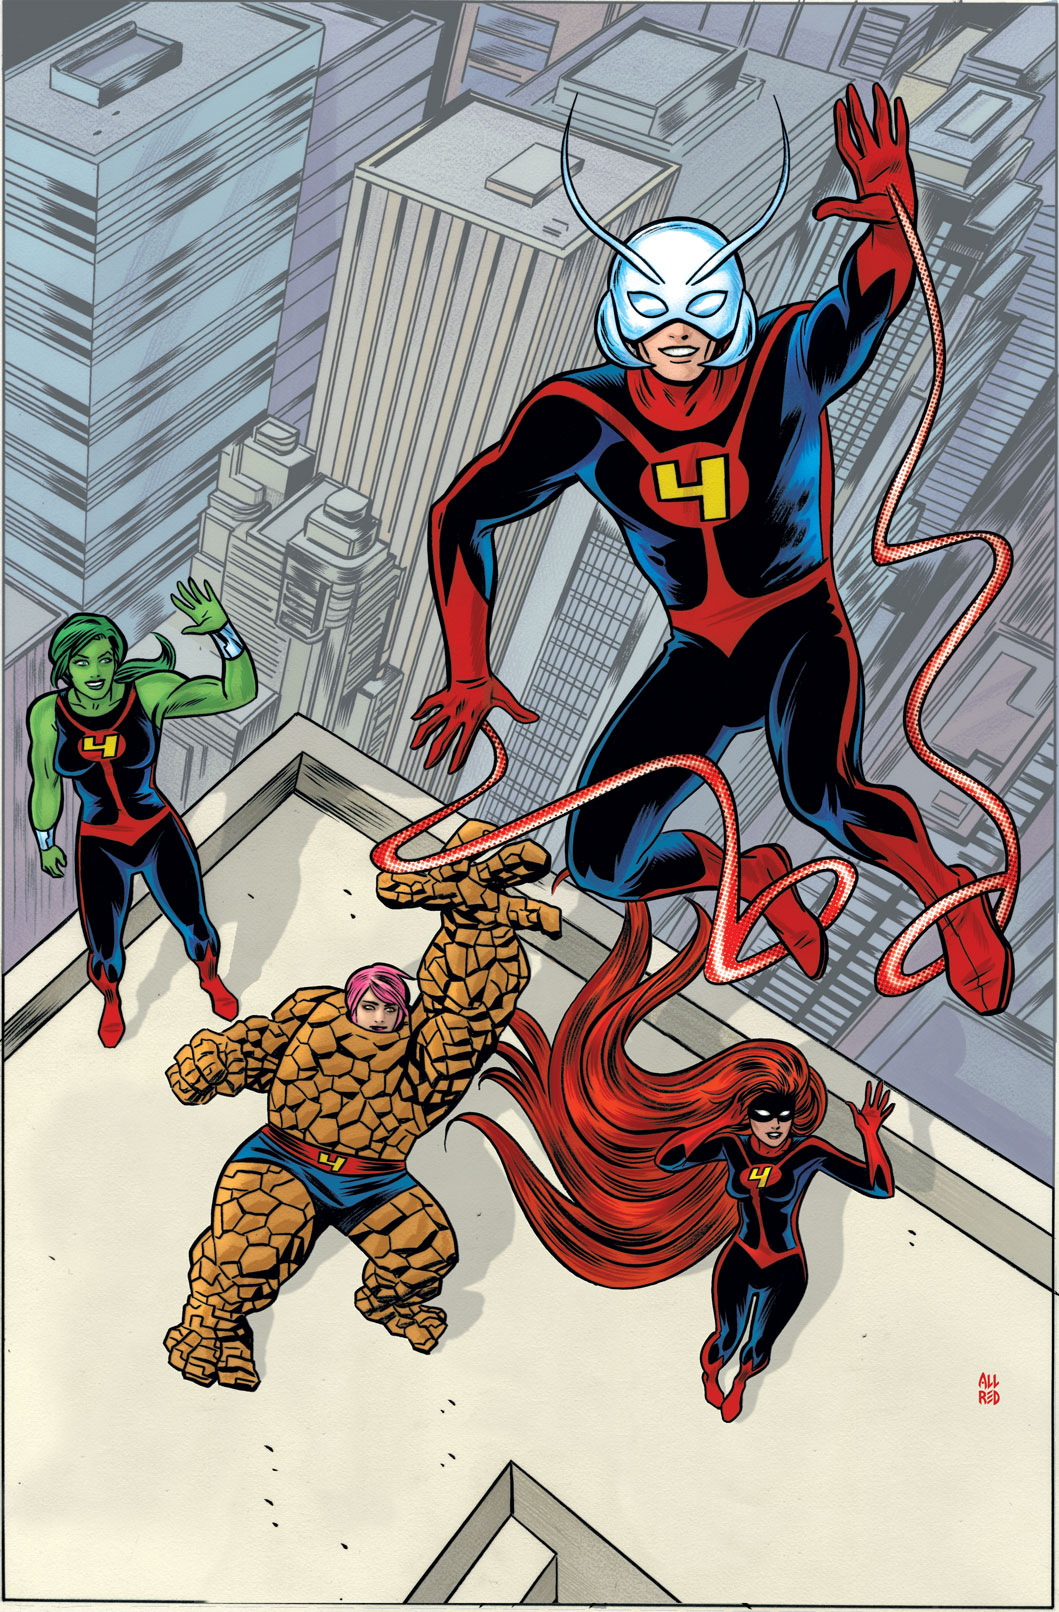 FF BY MIKE ALLRED POSTER NOW